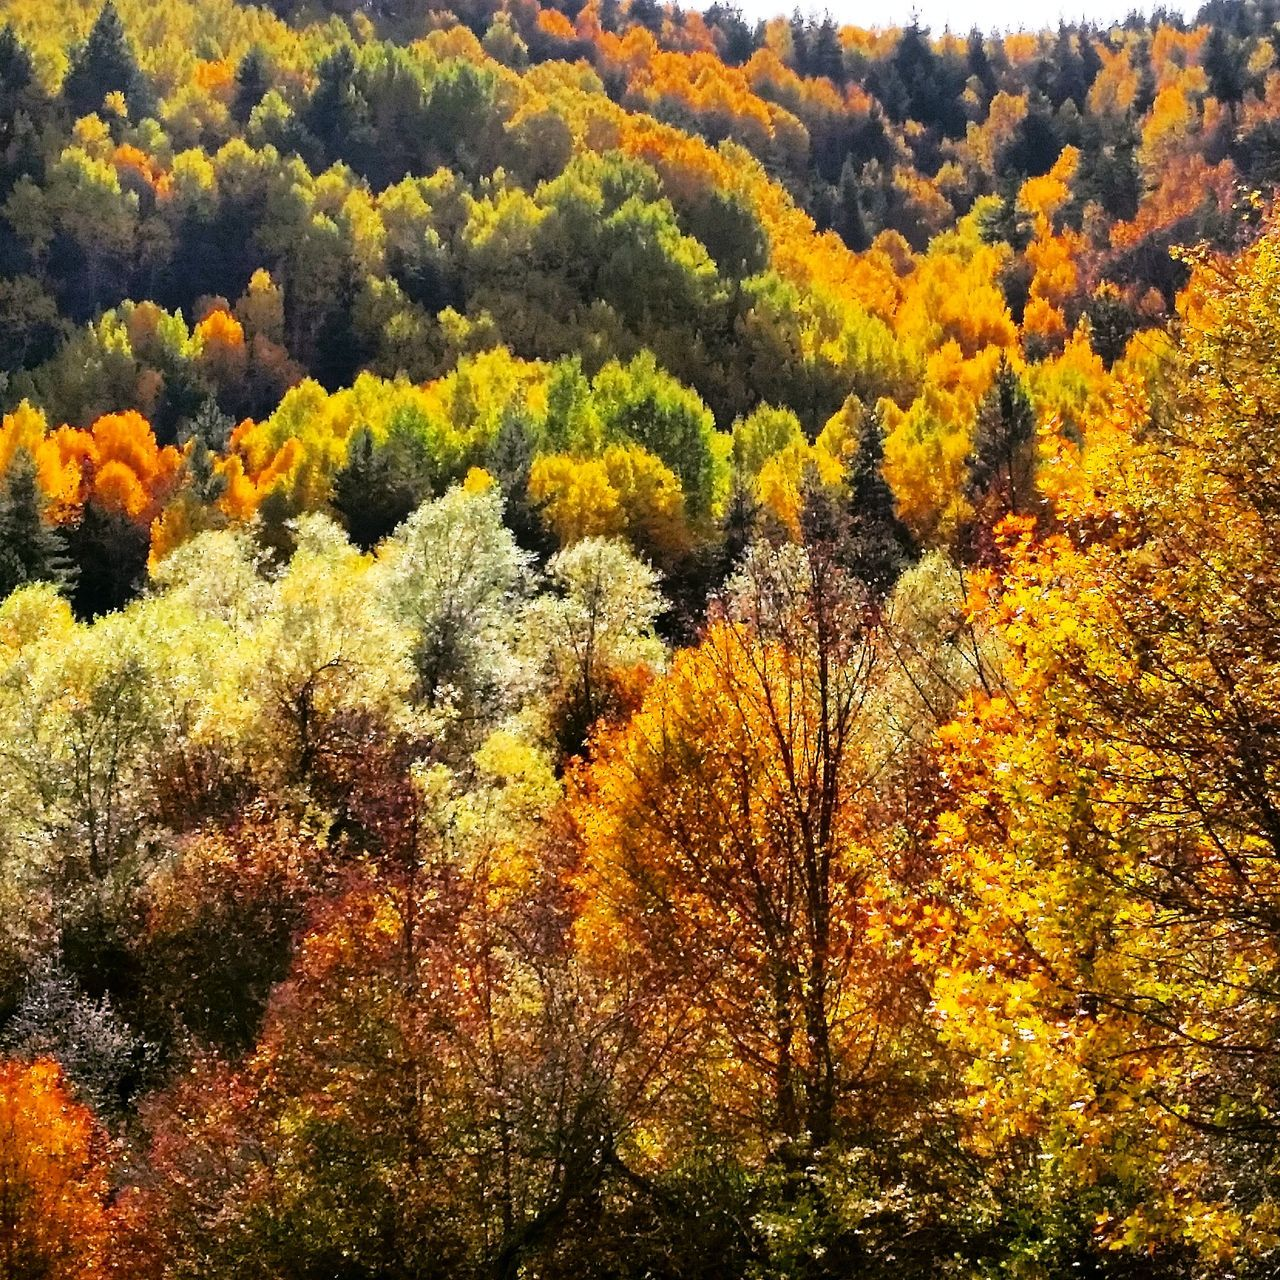 tree, autumn, beauty in nature, nature, tranquility, tranquil scene, scenics, growth, no people, outdoors, day, forest, yellow, sky